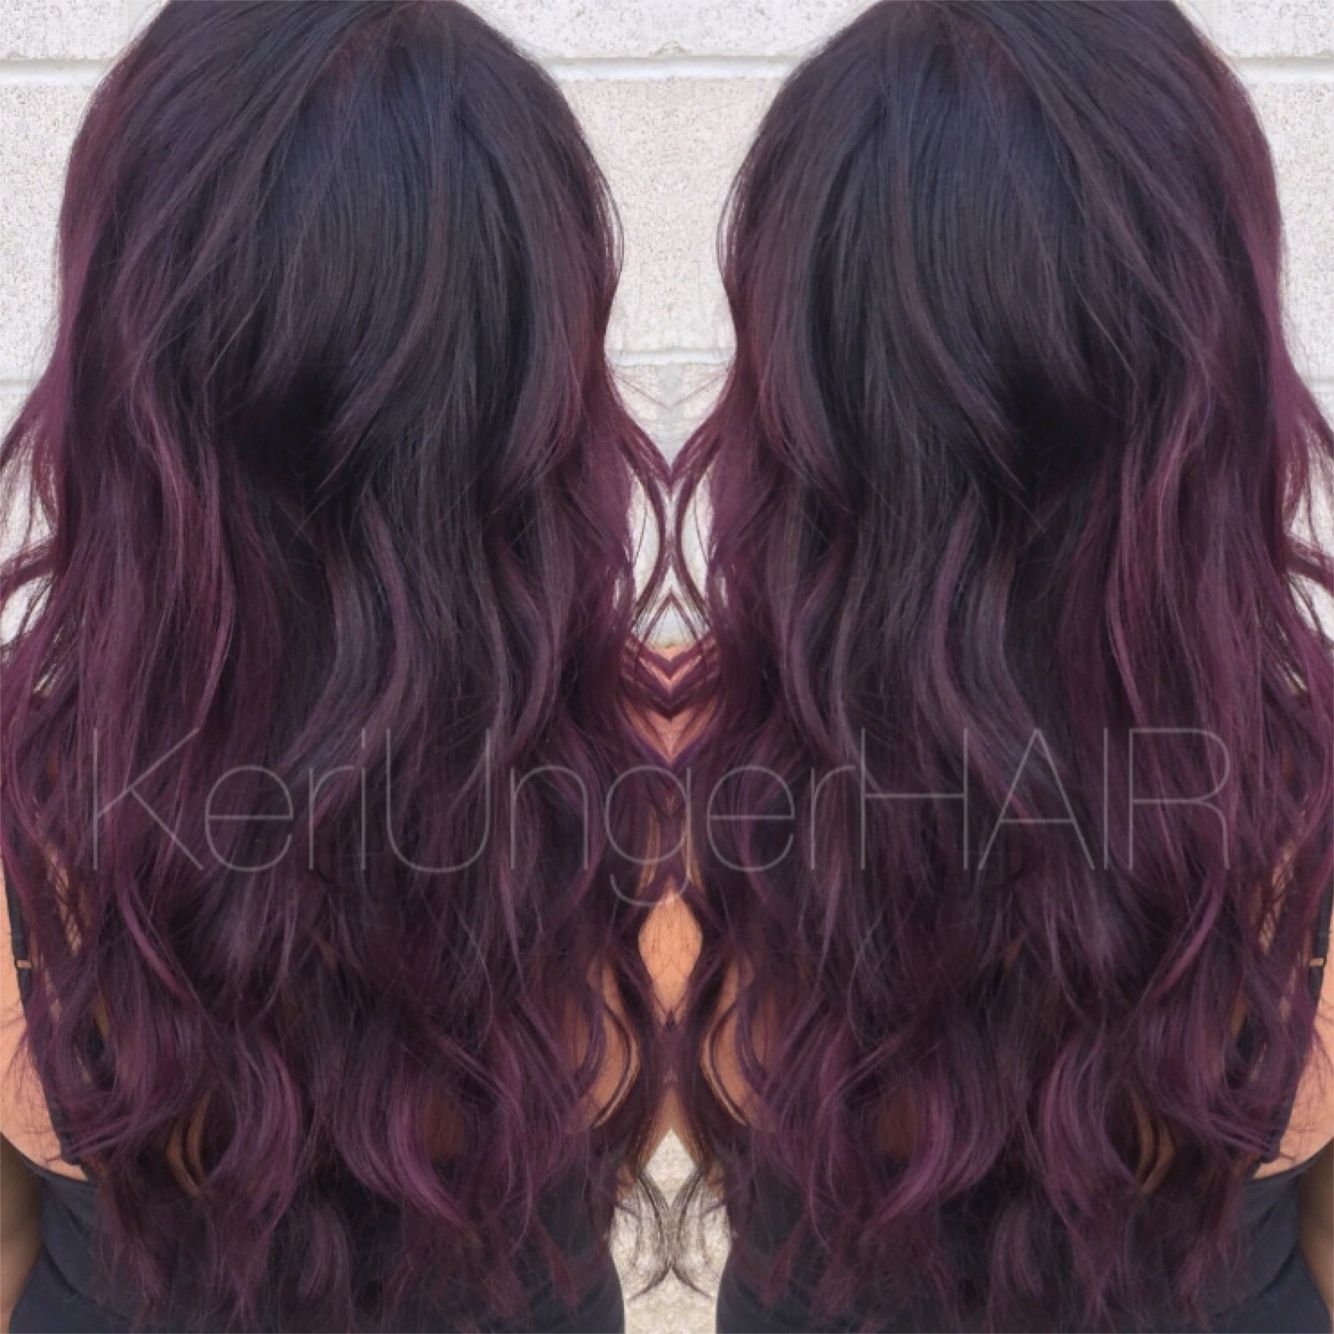 Perfectly plum // Violet hair Wella KeriUngerHAIR 1,440,899,1957